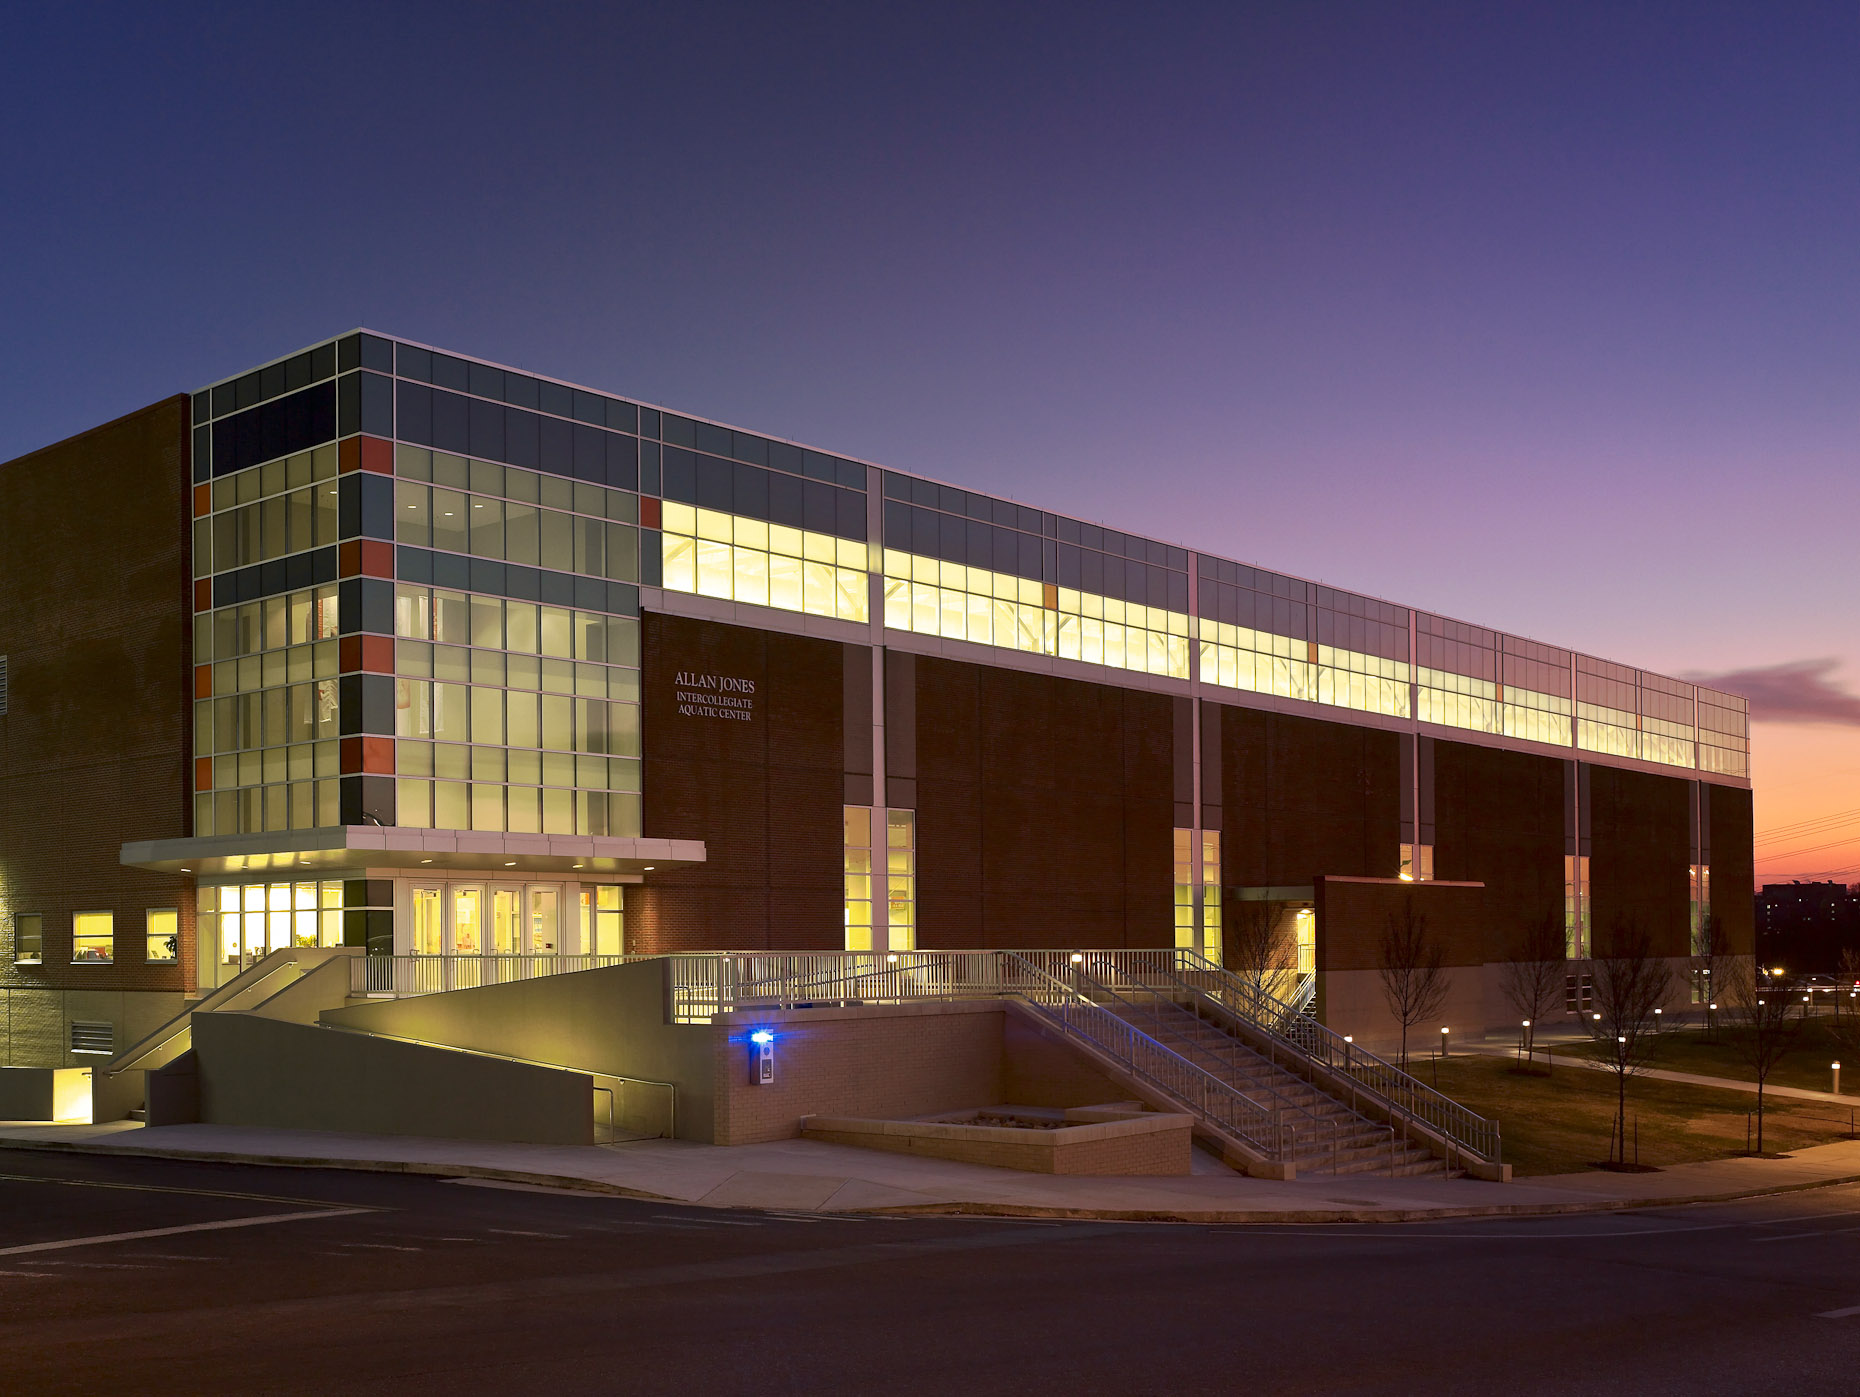 Allan Jones Intercollegiate Aquatic Center at the University of Tennessee by HNTB